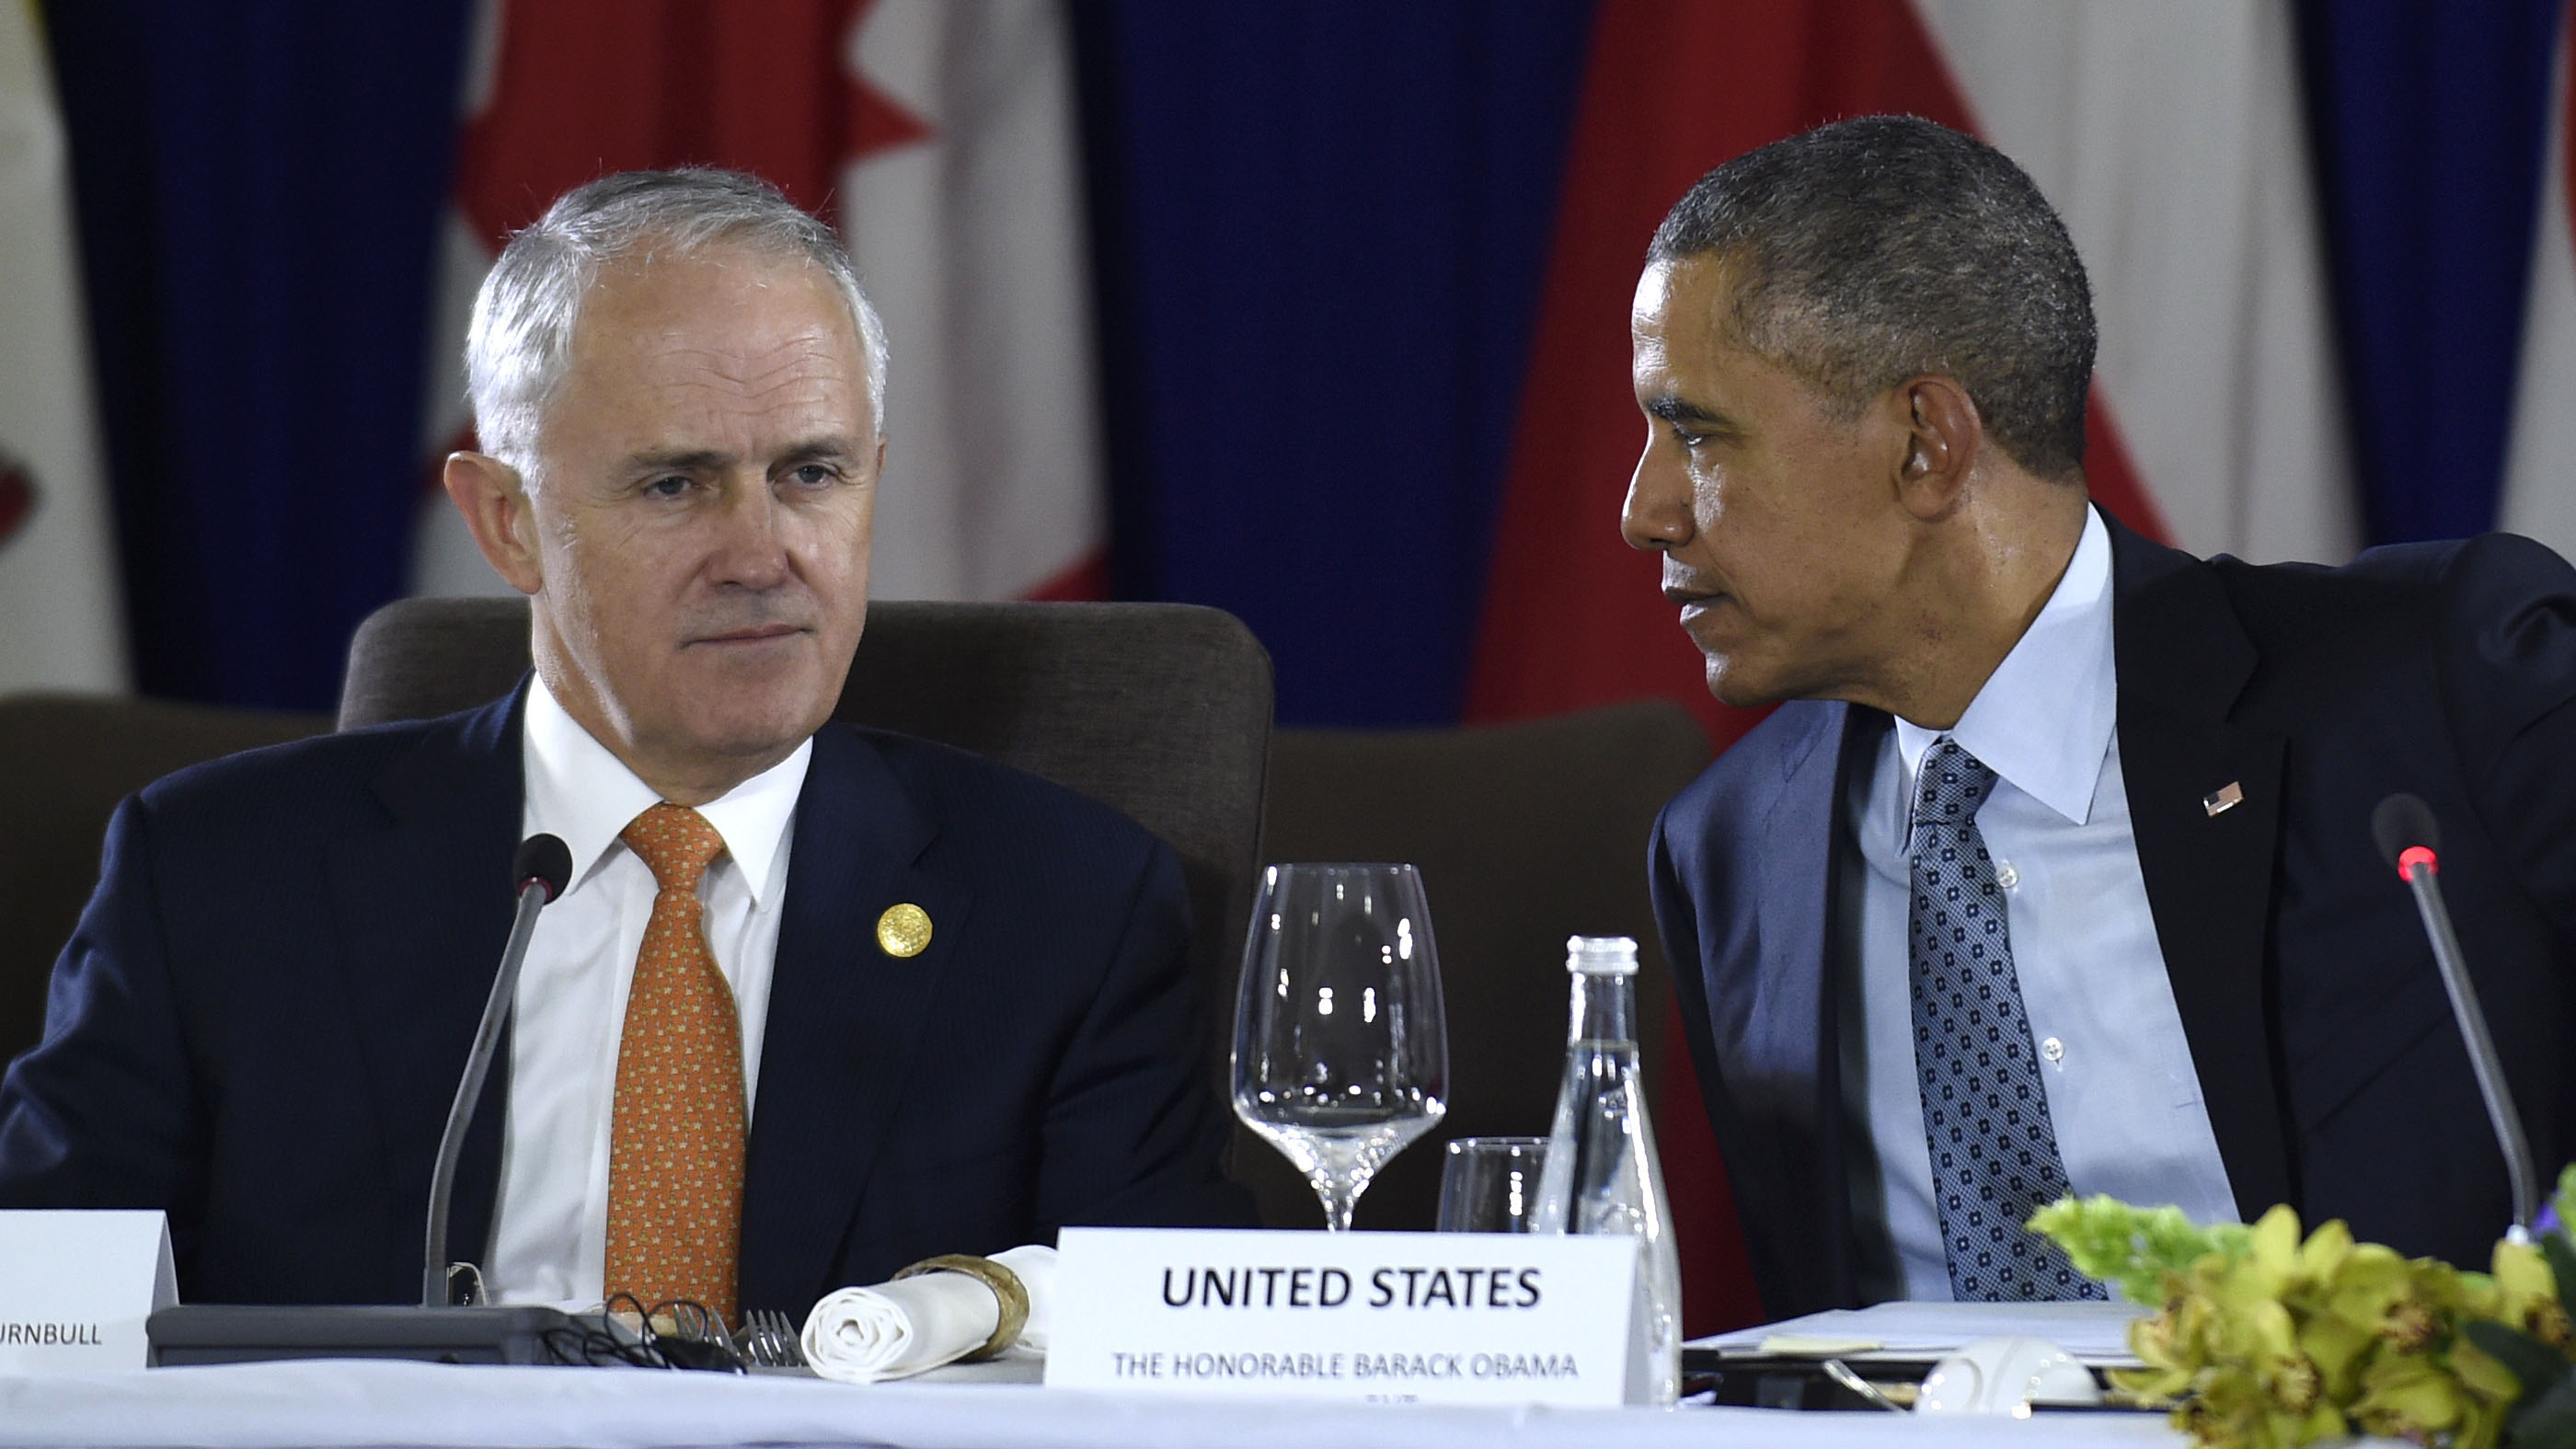 Obama jokes about Australia-New Zealand rivalry with Turnbull